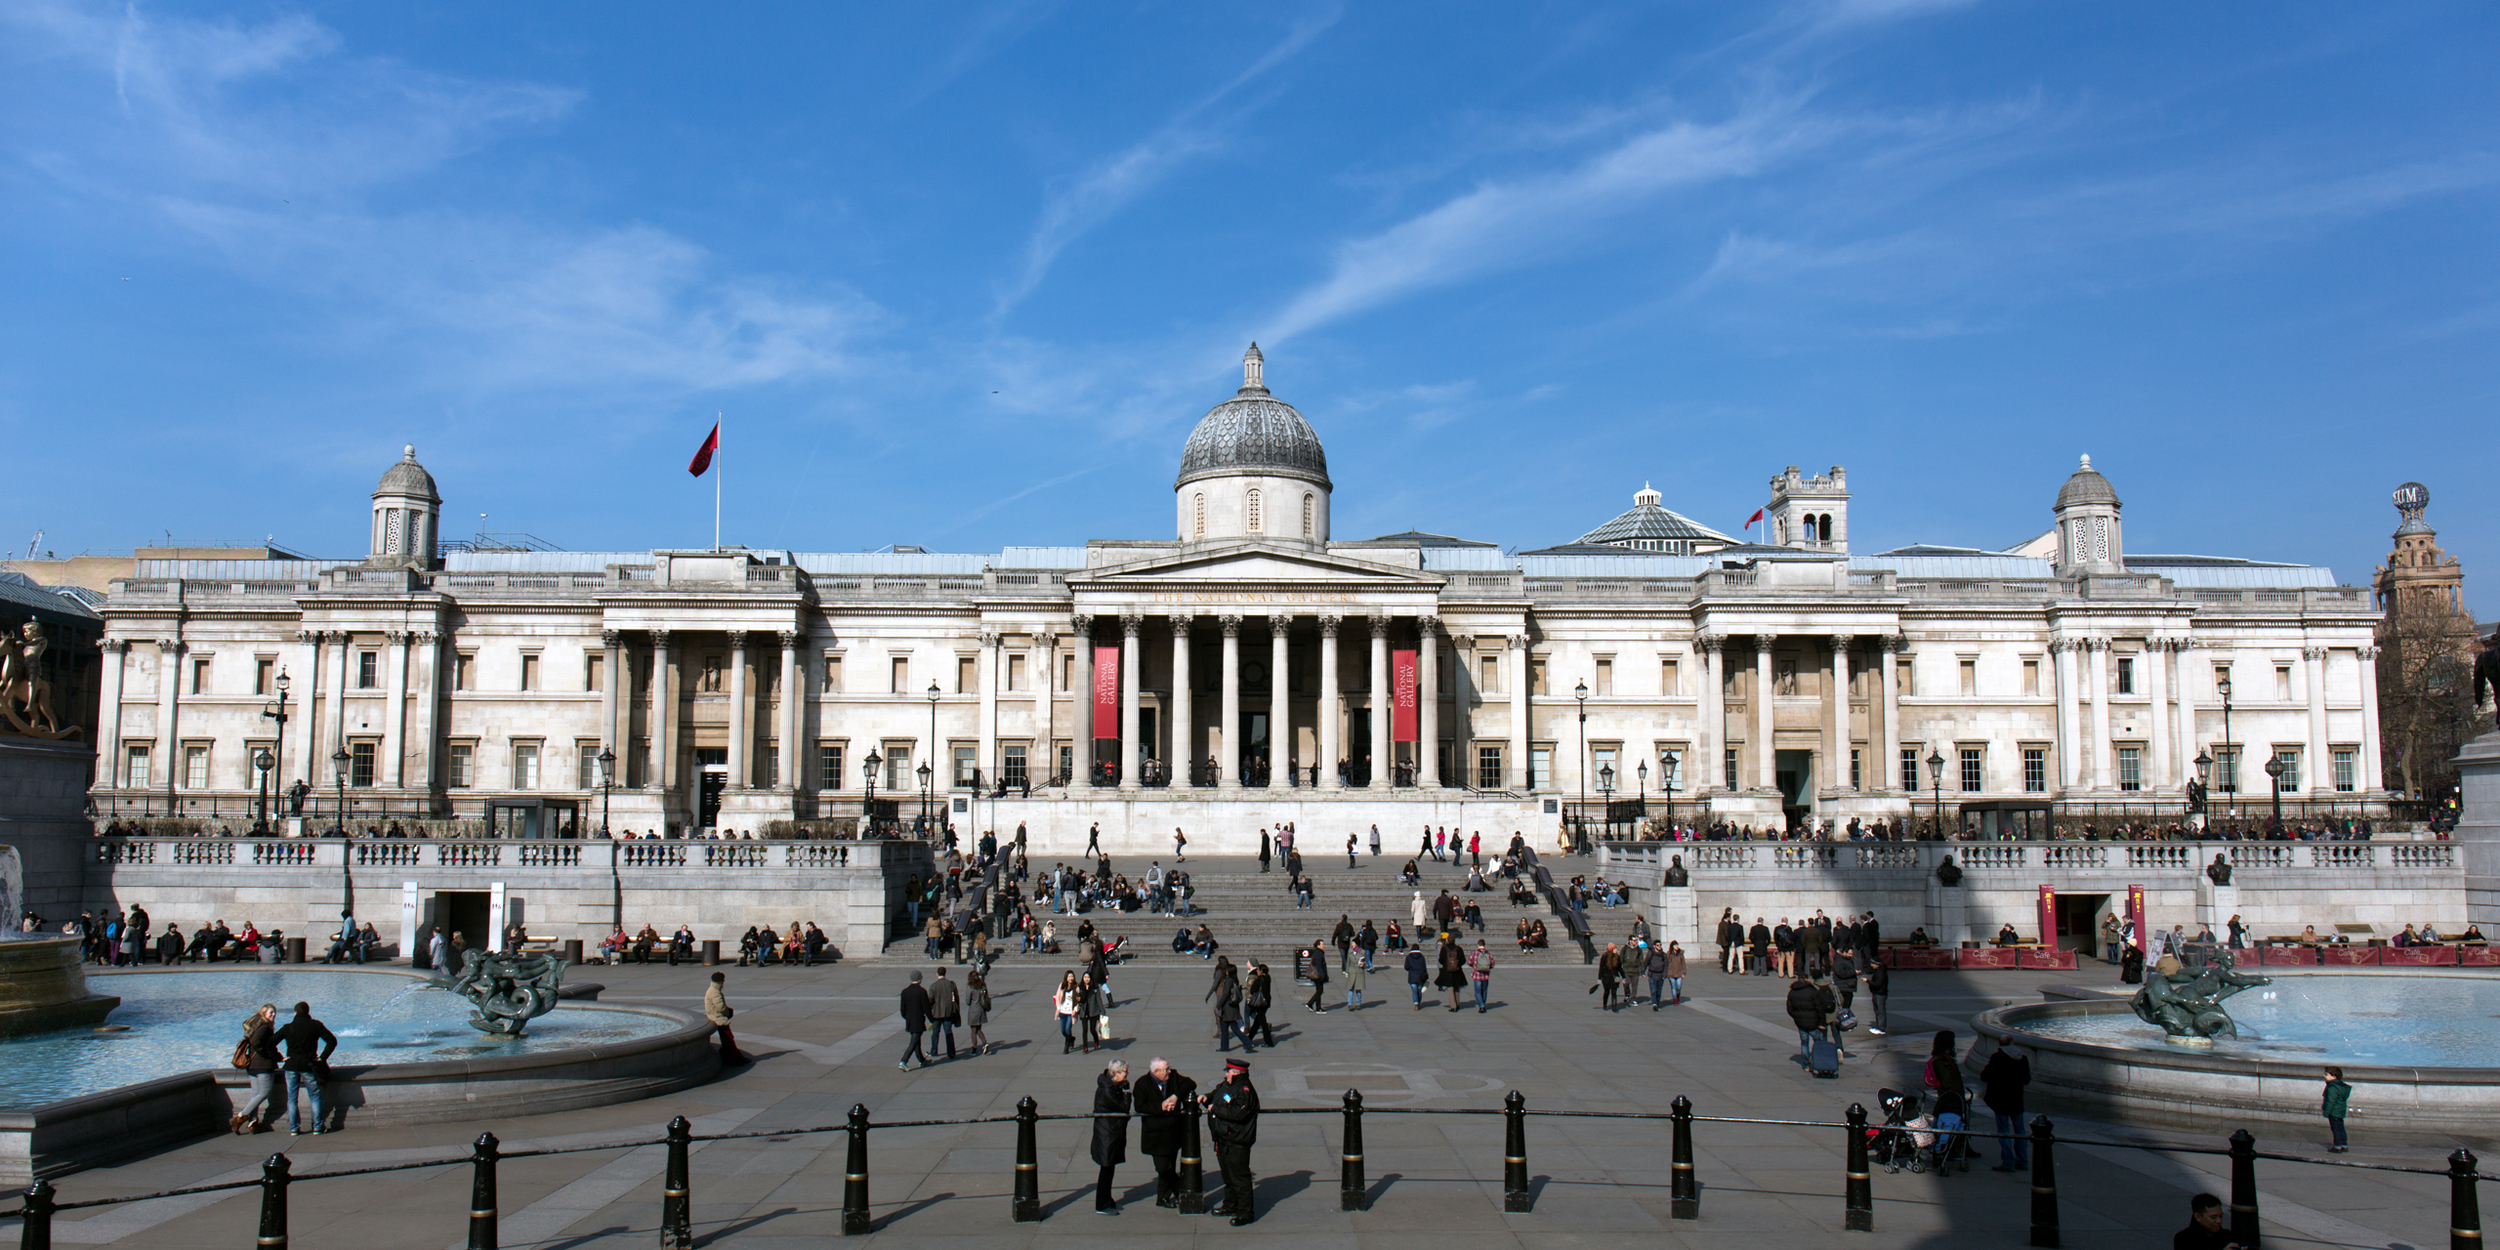 The National Gallery. I'm sure the blue sky was added in post...